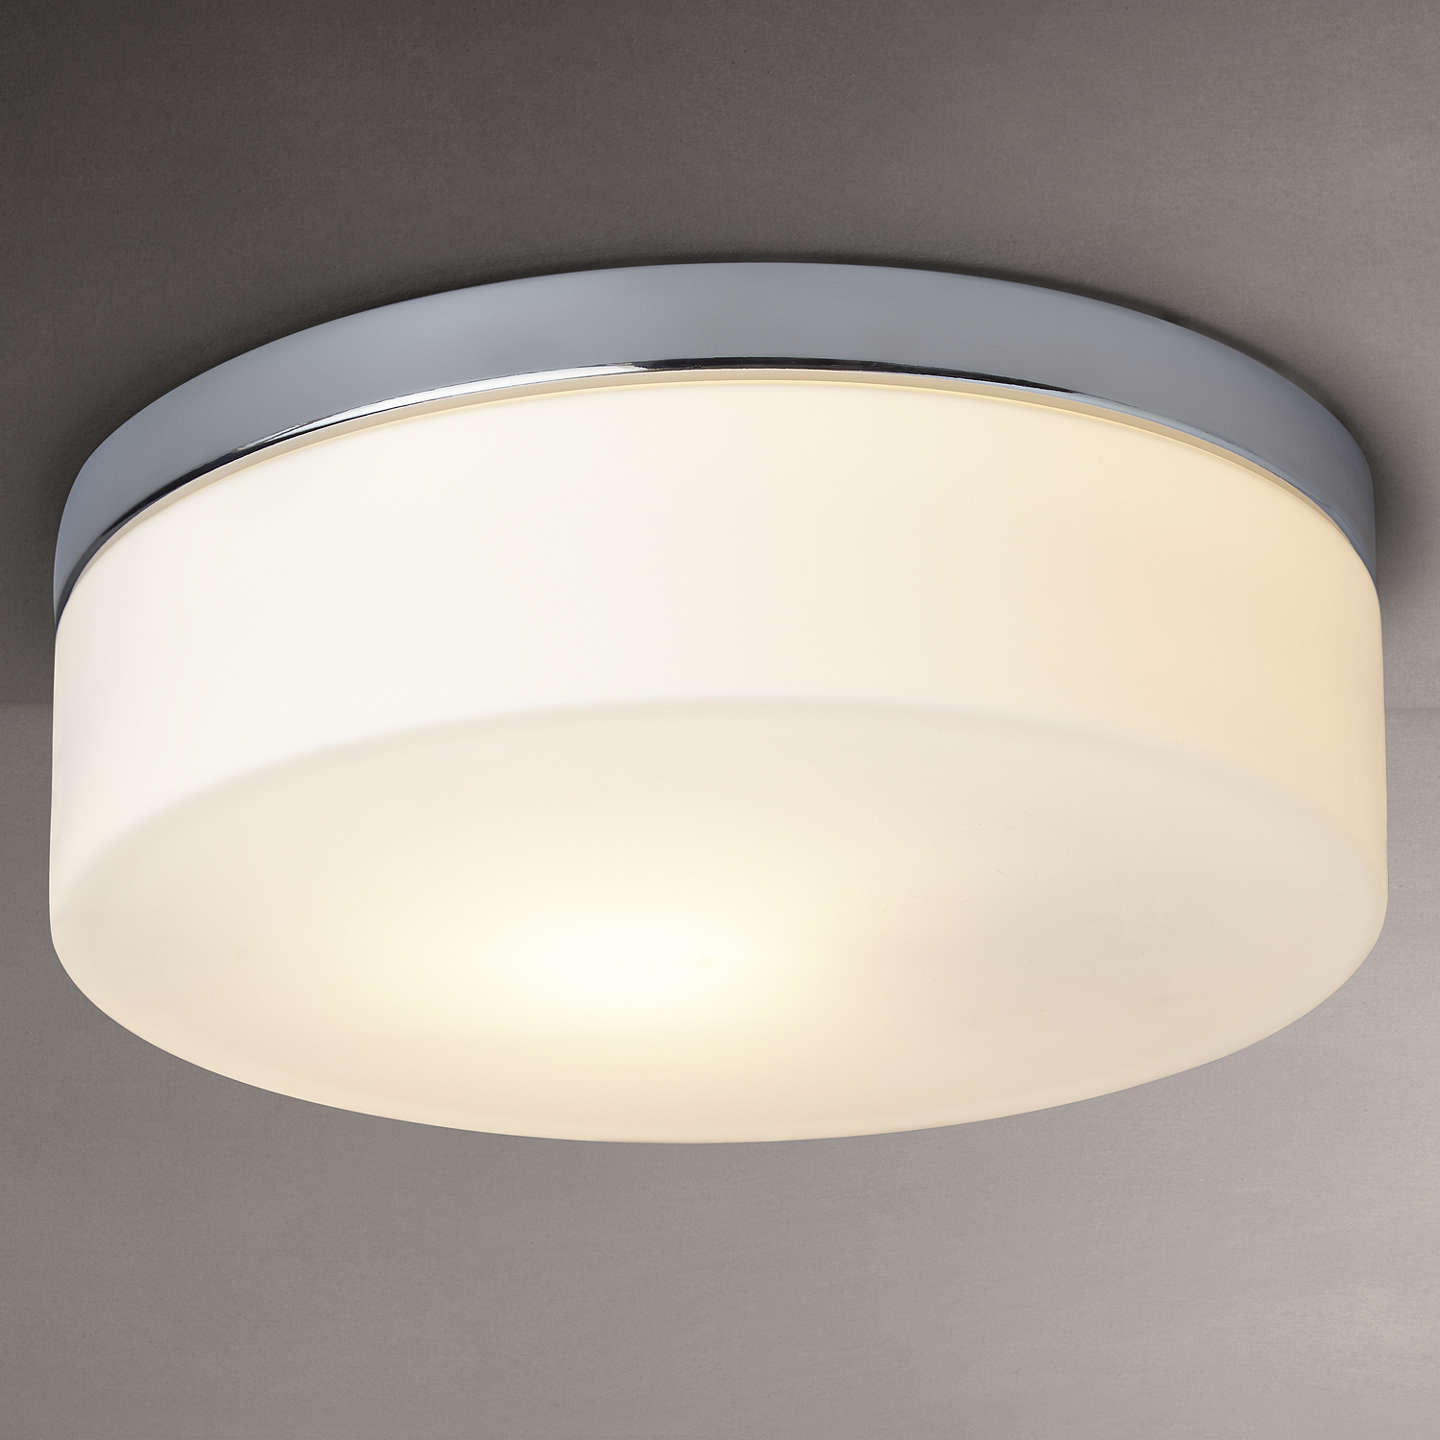 Astro sabina round flush bathroom ceiling light at john lewis buyastro sabina round flush bathroom ceiling light online at johnlewis mozeypictures Gallery